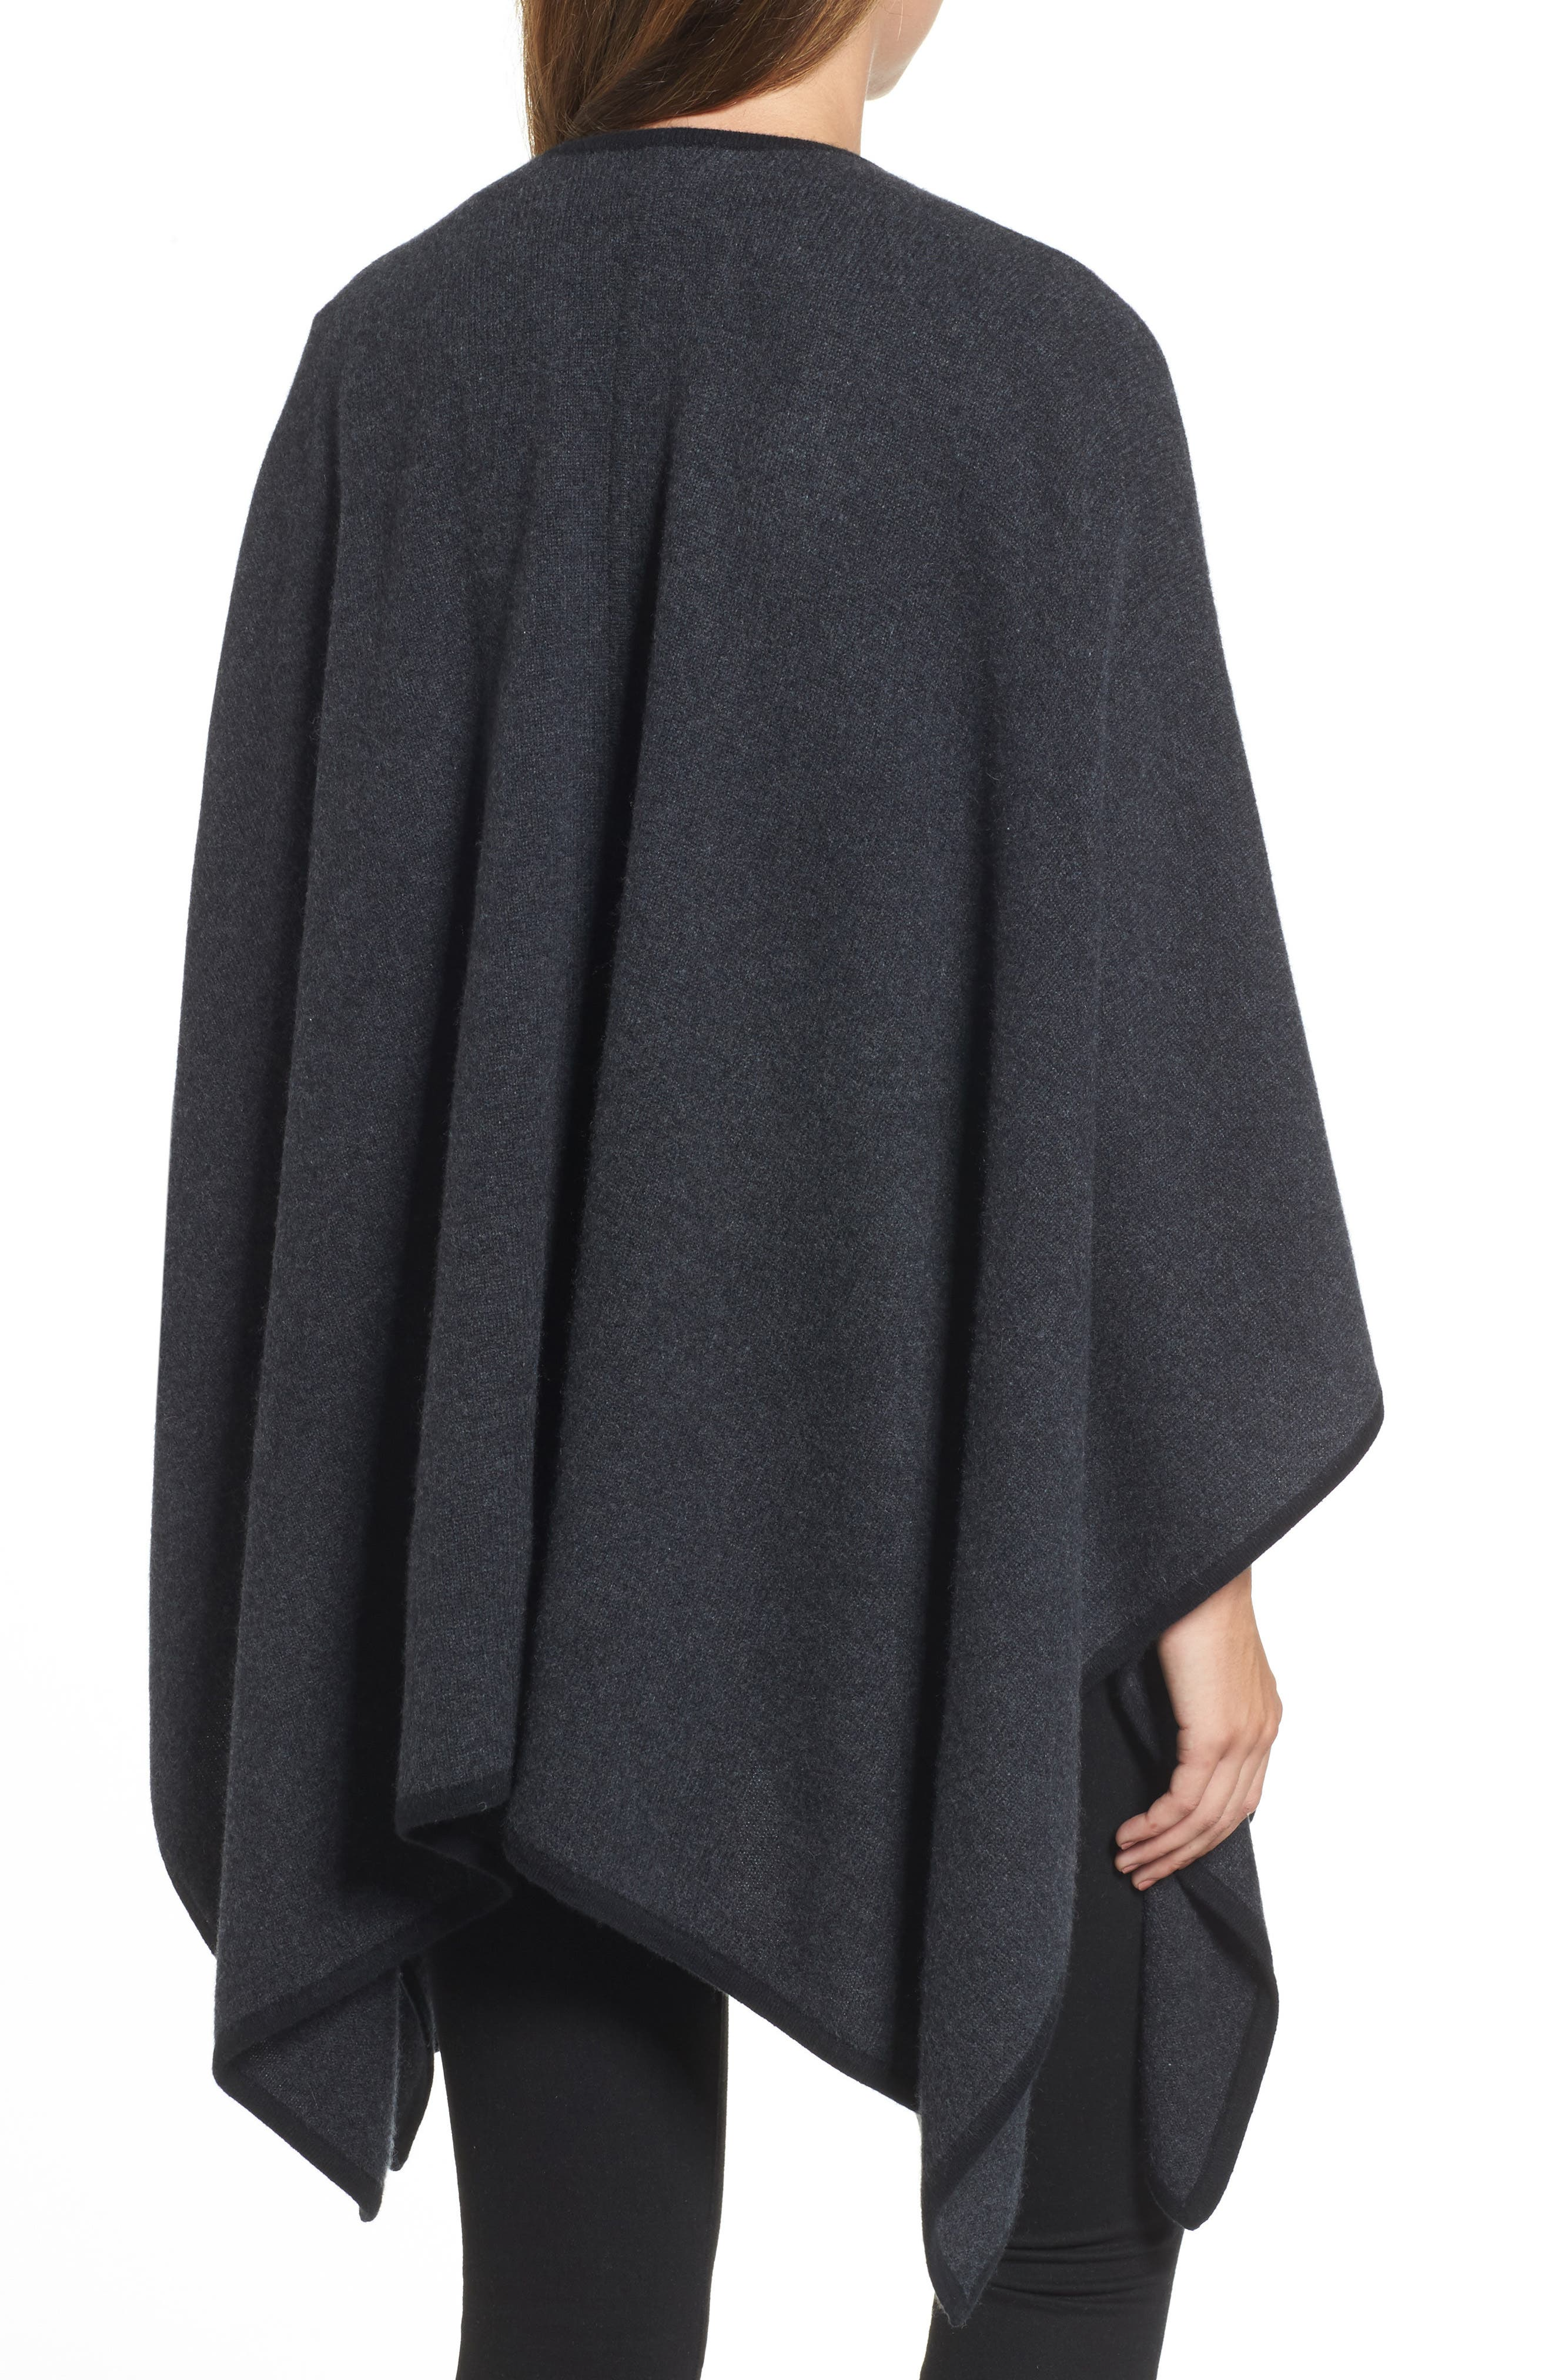 Cashmere Cape,                             Alternate thumbnail 2, color,                             Grey Dark Charcoal Heather